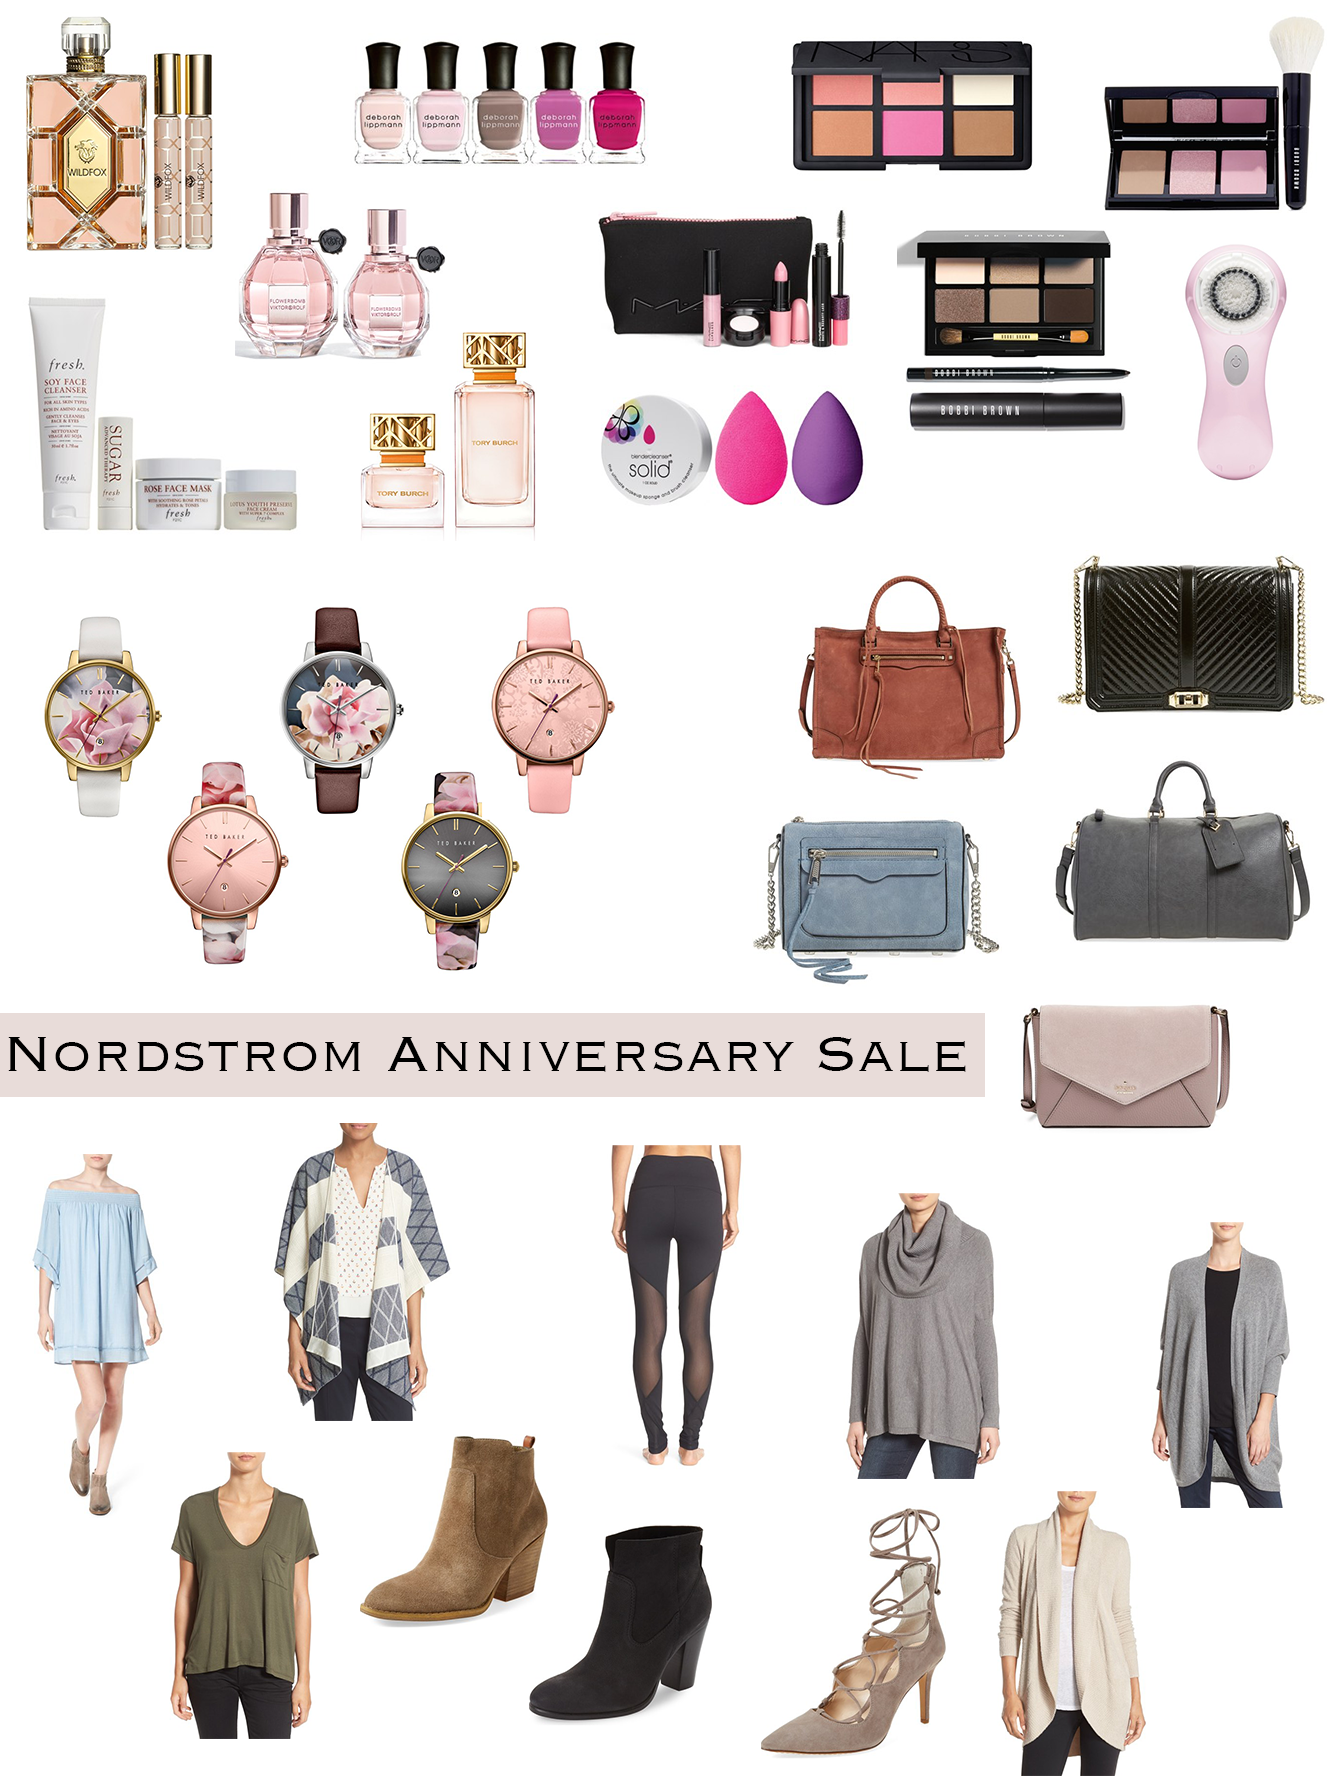 Blondie in the City | Nordstrom Anniversary Sale Picks | #NSale | Beauty Products | Nordstrom Handbags | Ted Baker Watch | Nordstrom Sale